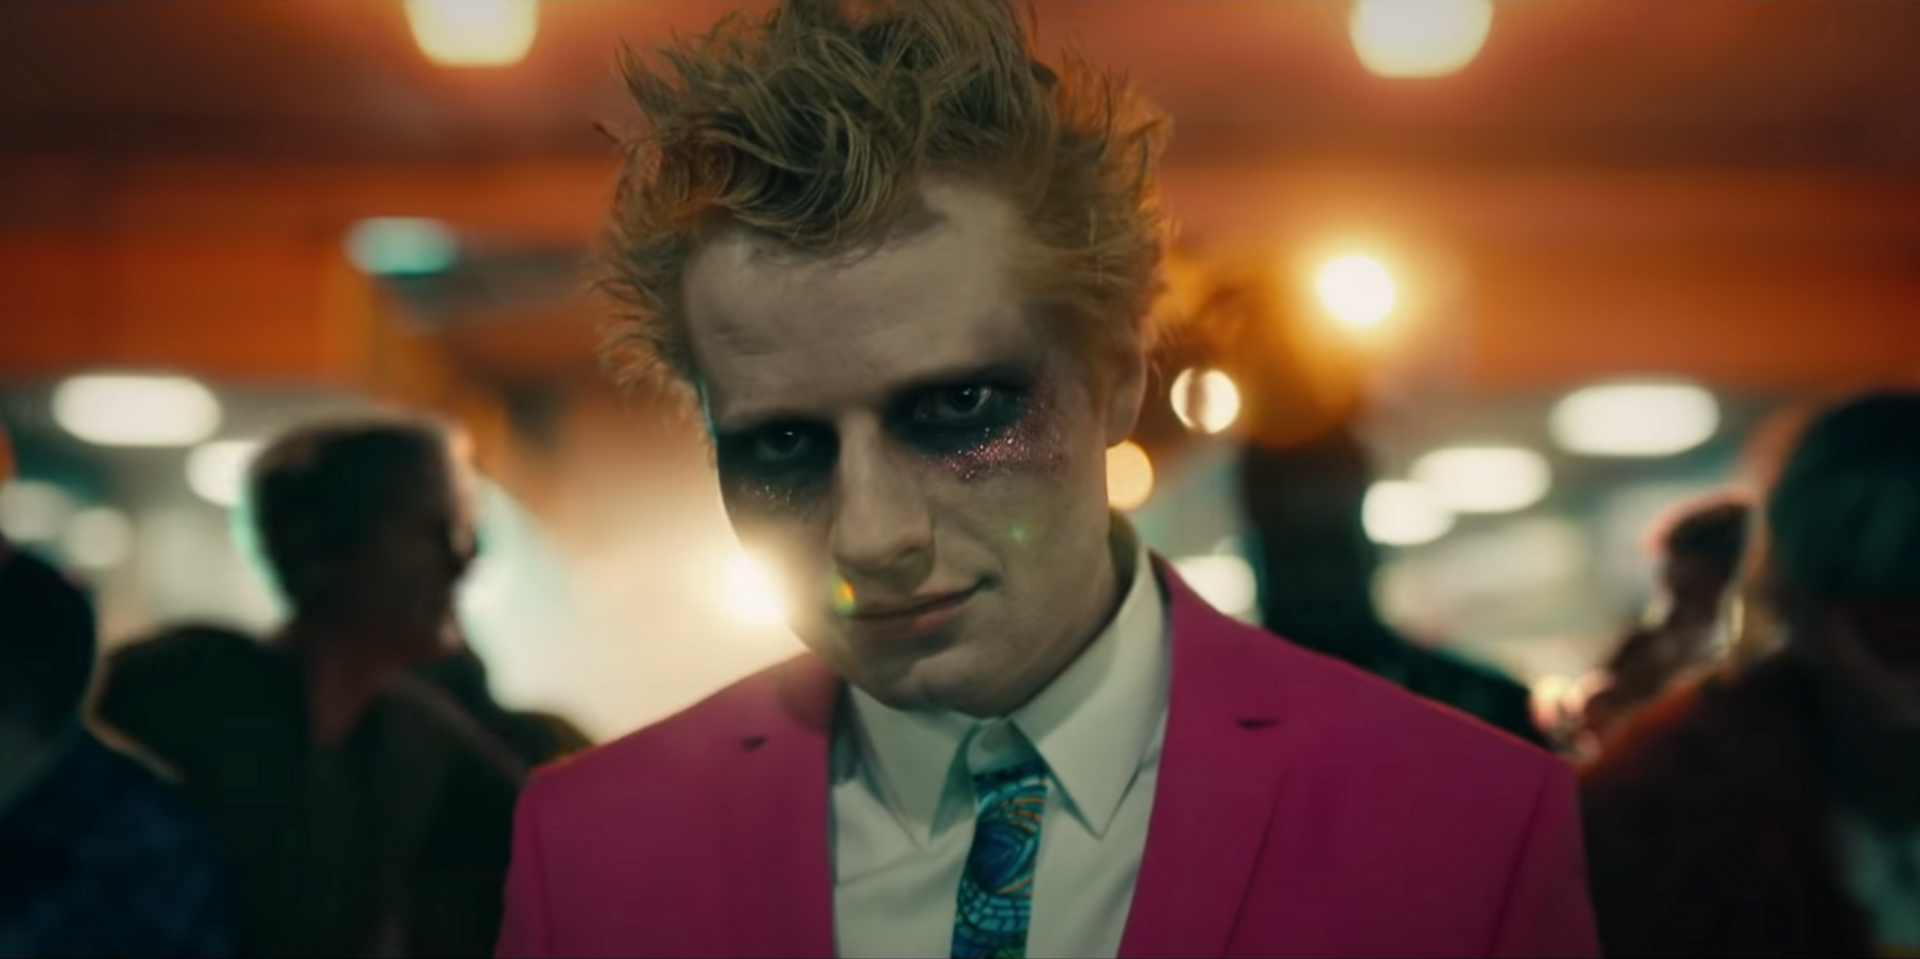 Ed Sheeran is back as a vampire with his new single 'Bad Habits' - watch